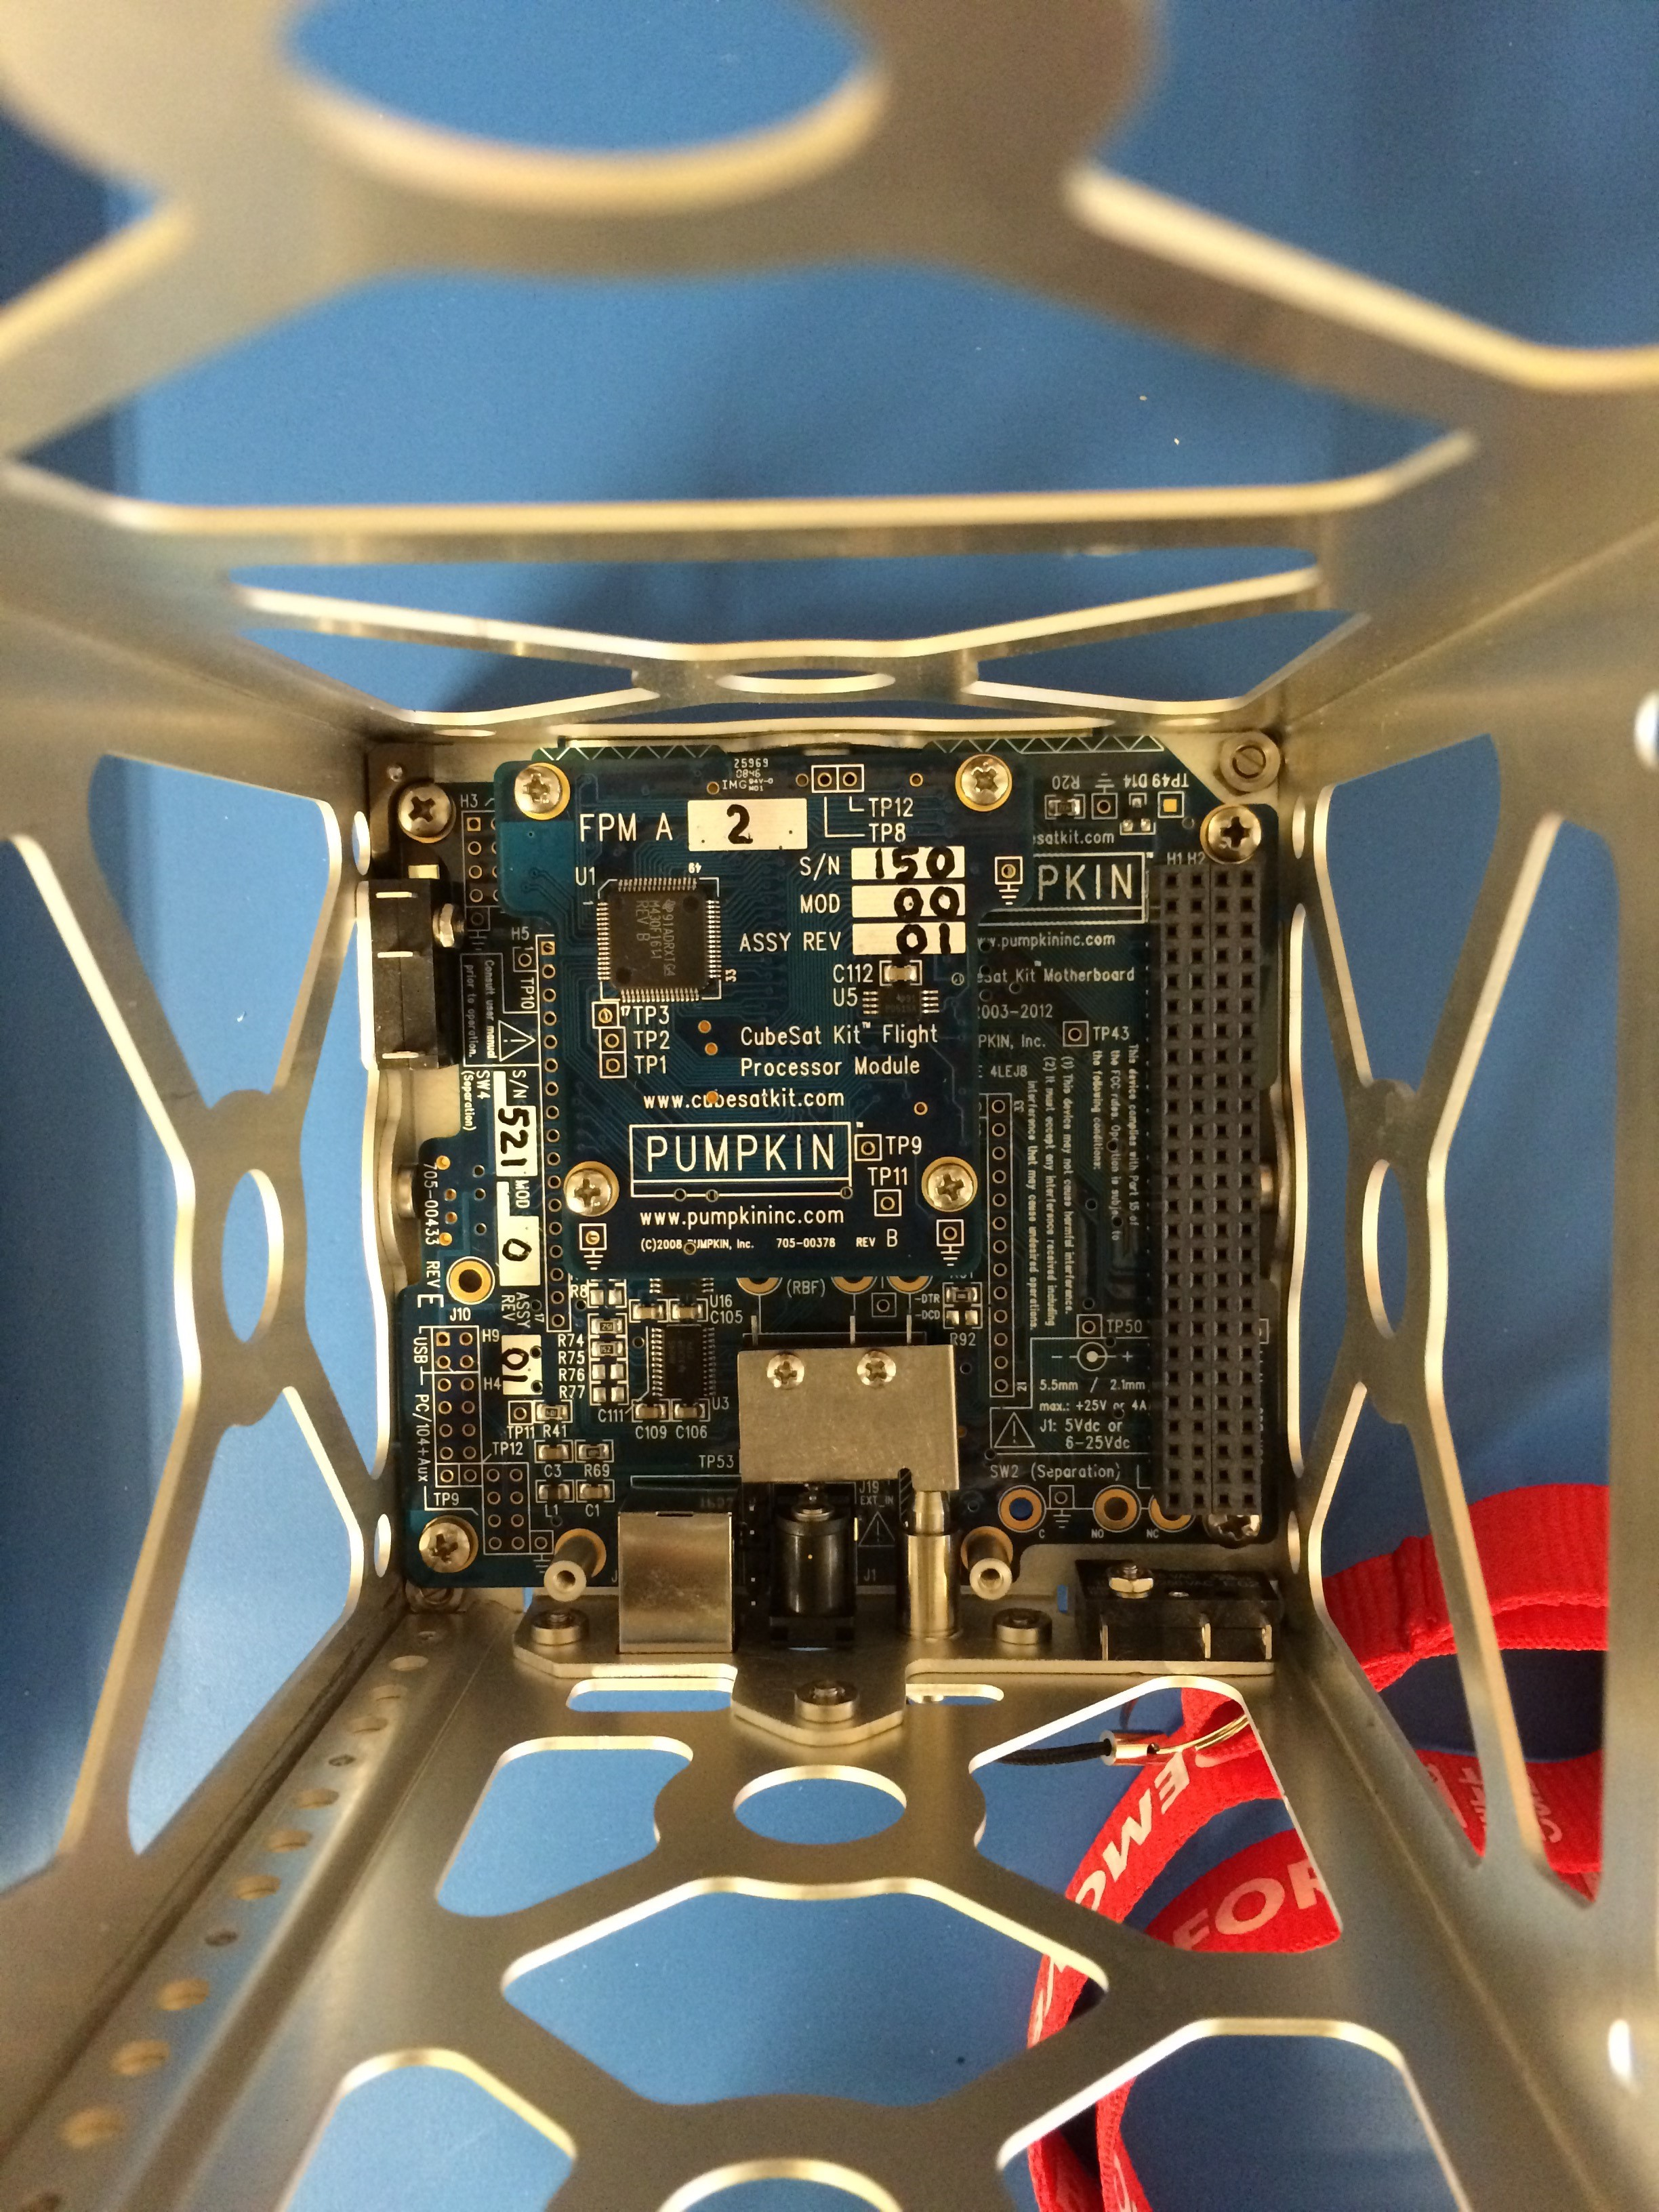 Wiki - 2015 Prototype mission for cubesat